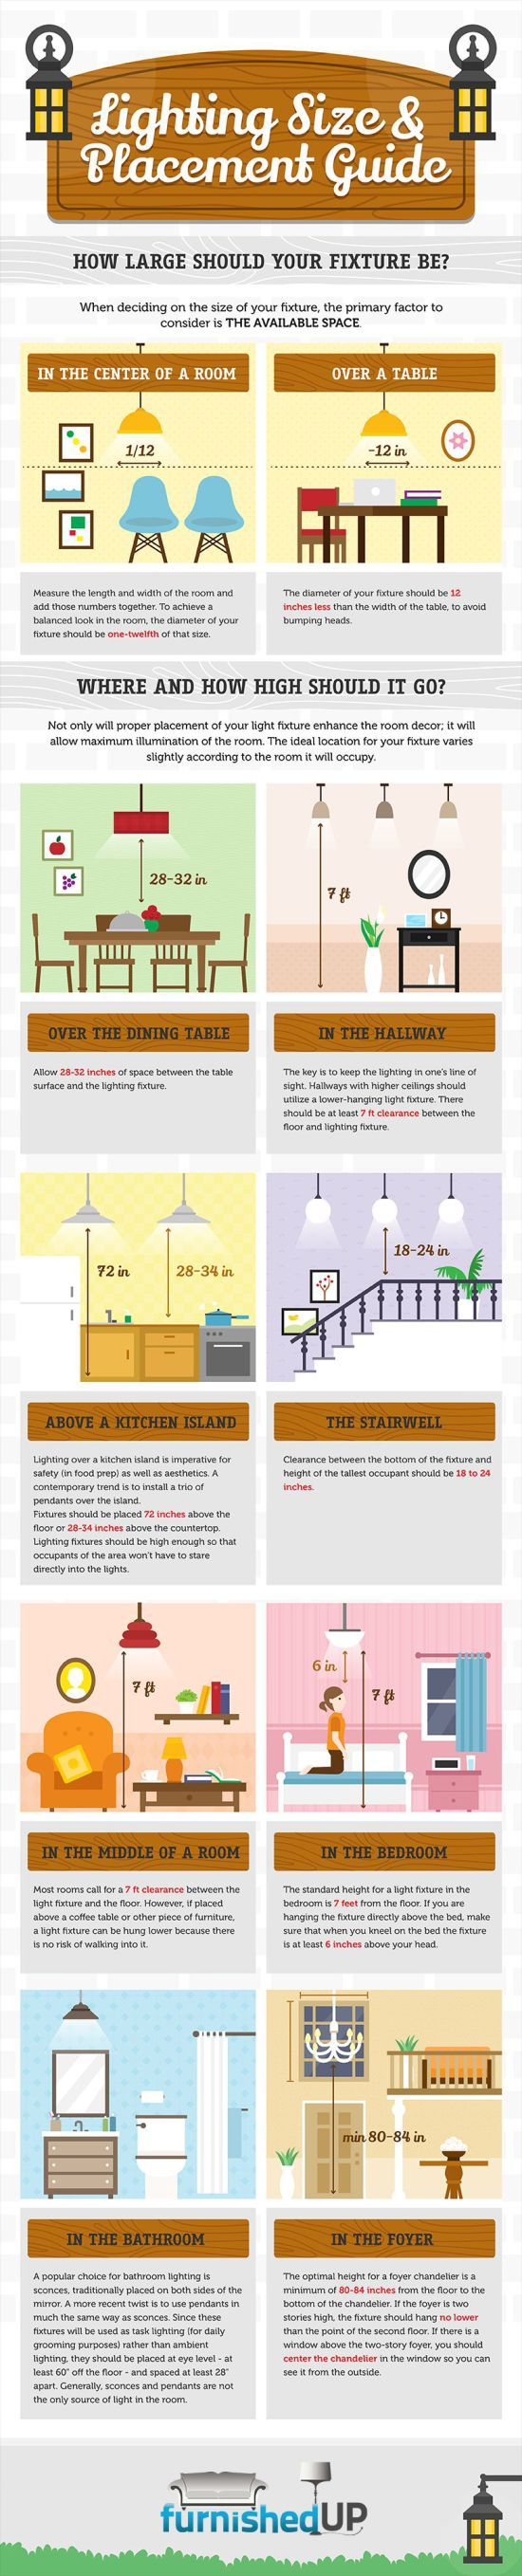 Practical Lighting Size&Placement Guide for Every Corner of the House [Infographic]StudioAflo | Interior Design Ideas | StudioAflo | Interior Design Ideas